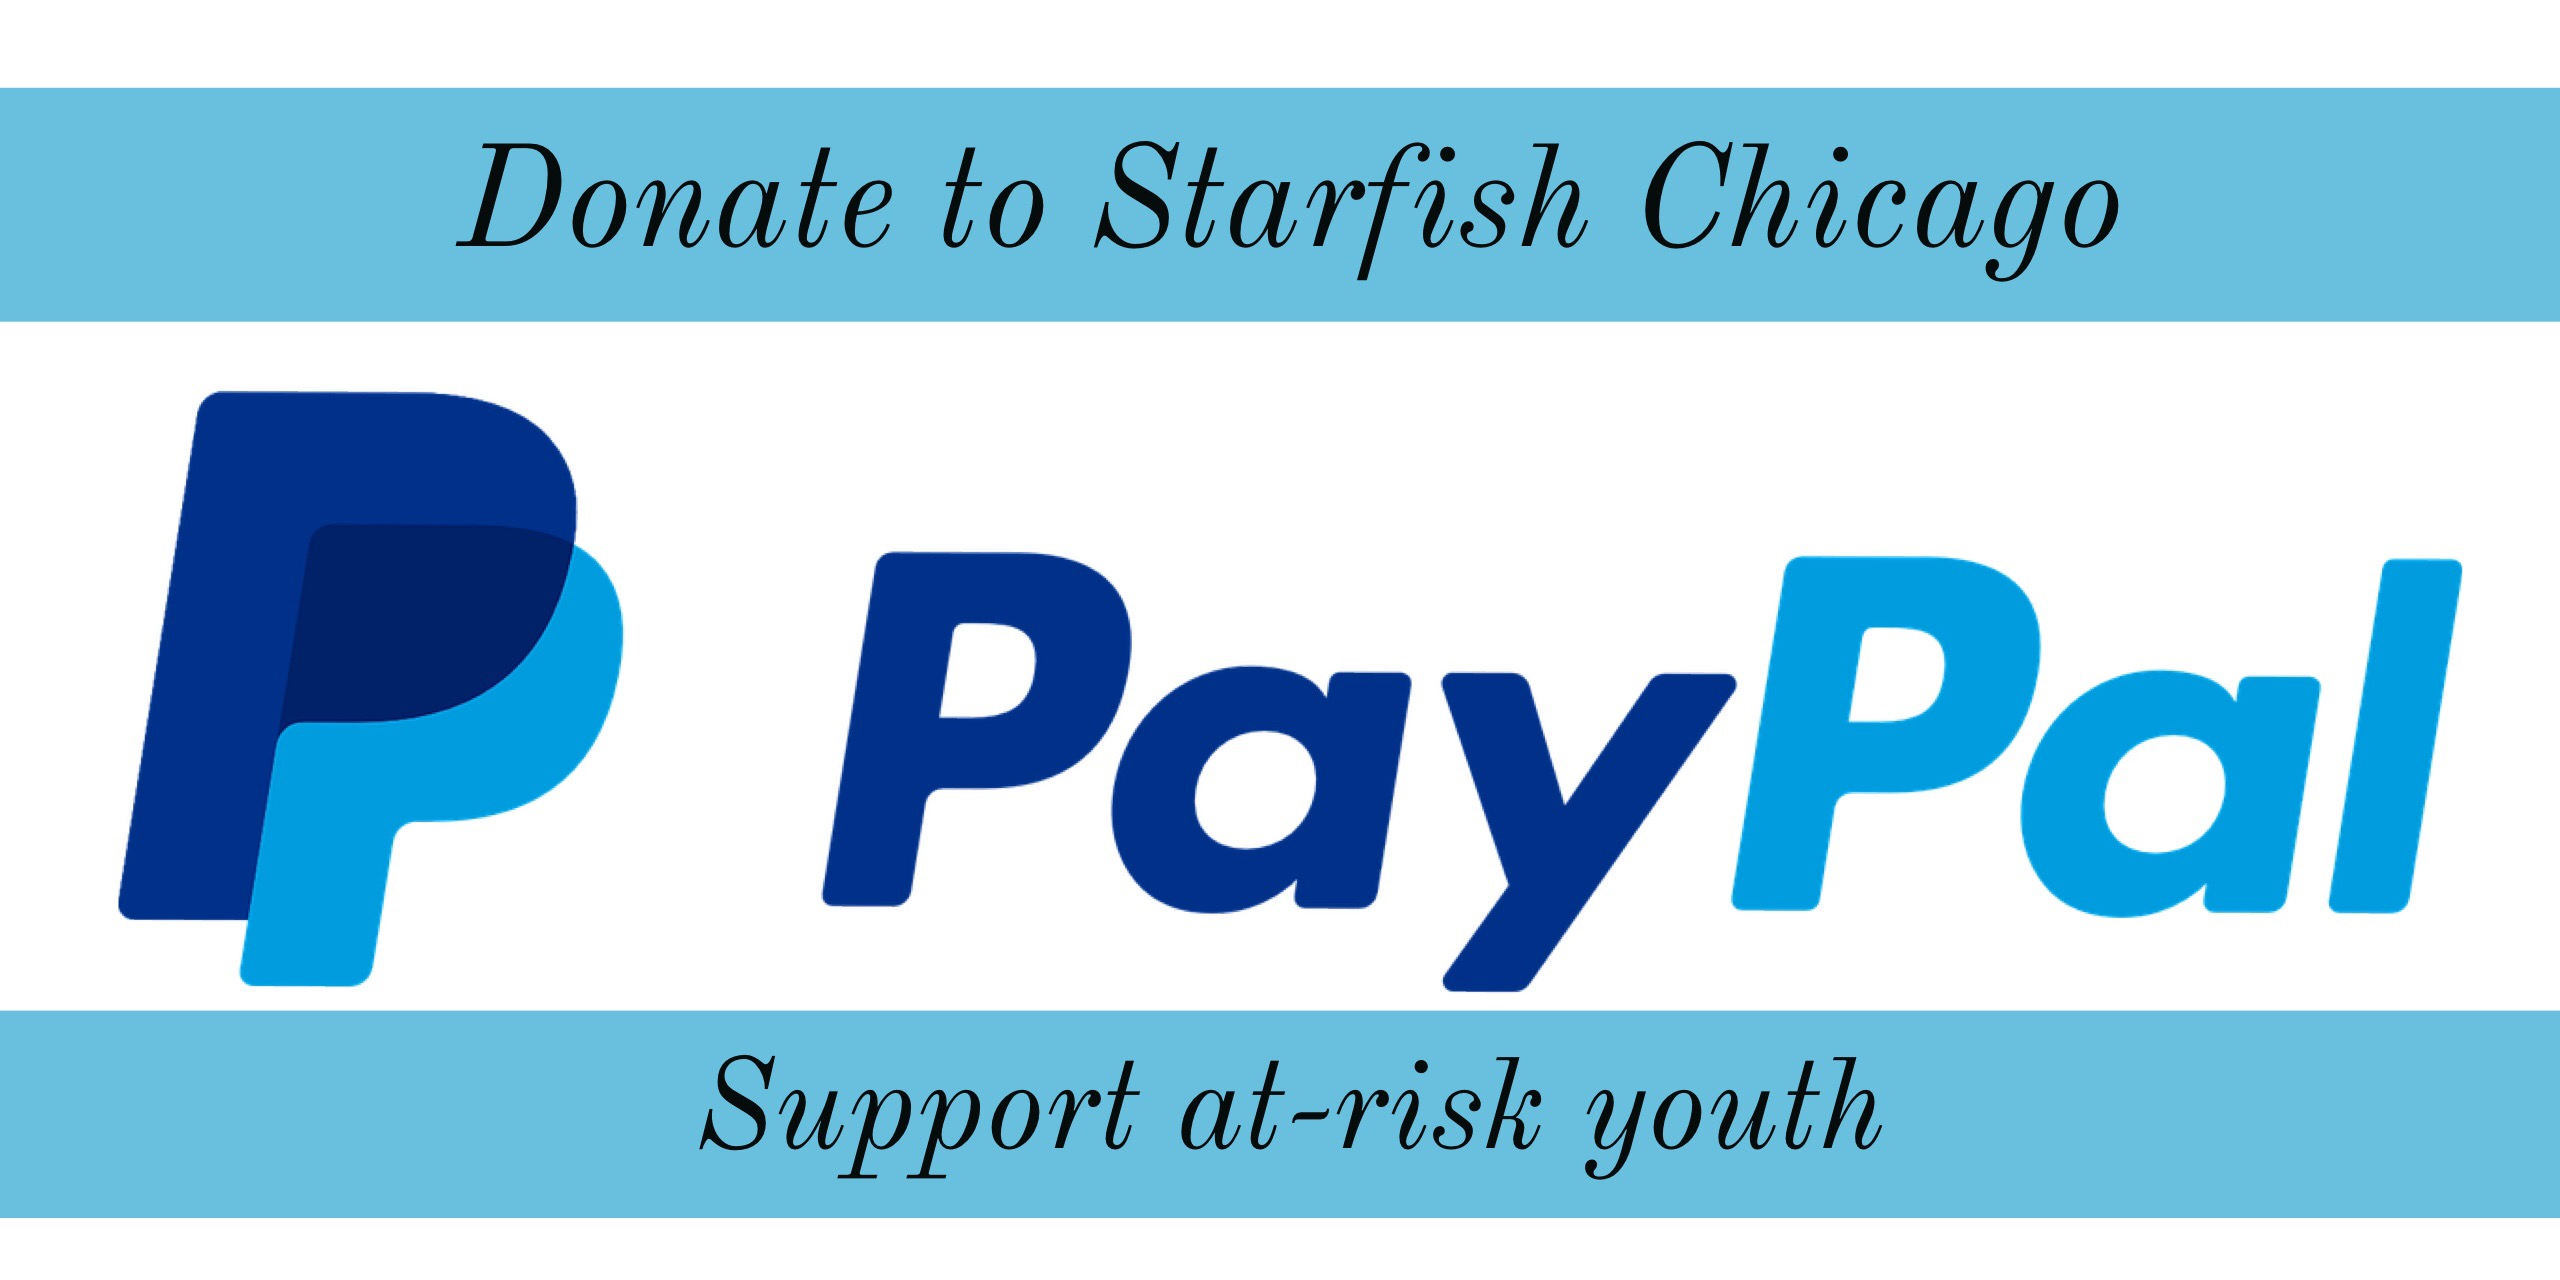 Donate to Starfish Learning Center today to support our youth program and at-risk inner city kids.